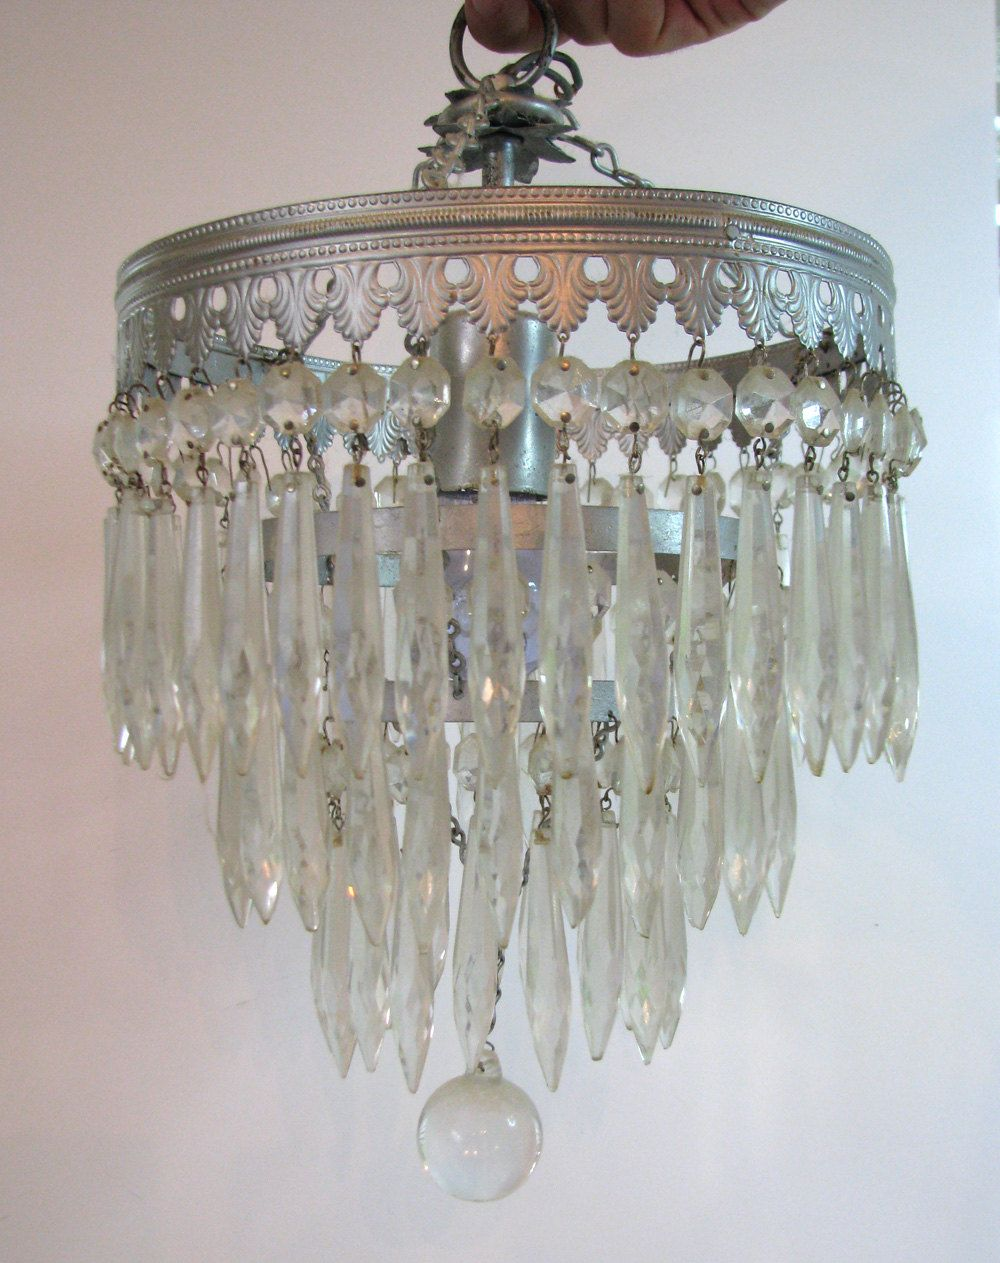 Working Vintage Art Deco Glass Crystal Chandelier With 3 Tiers